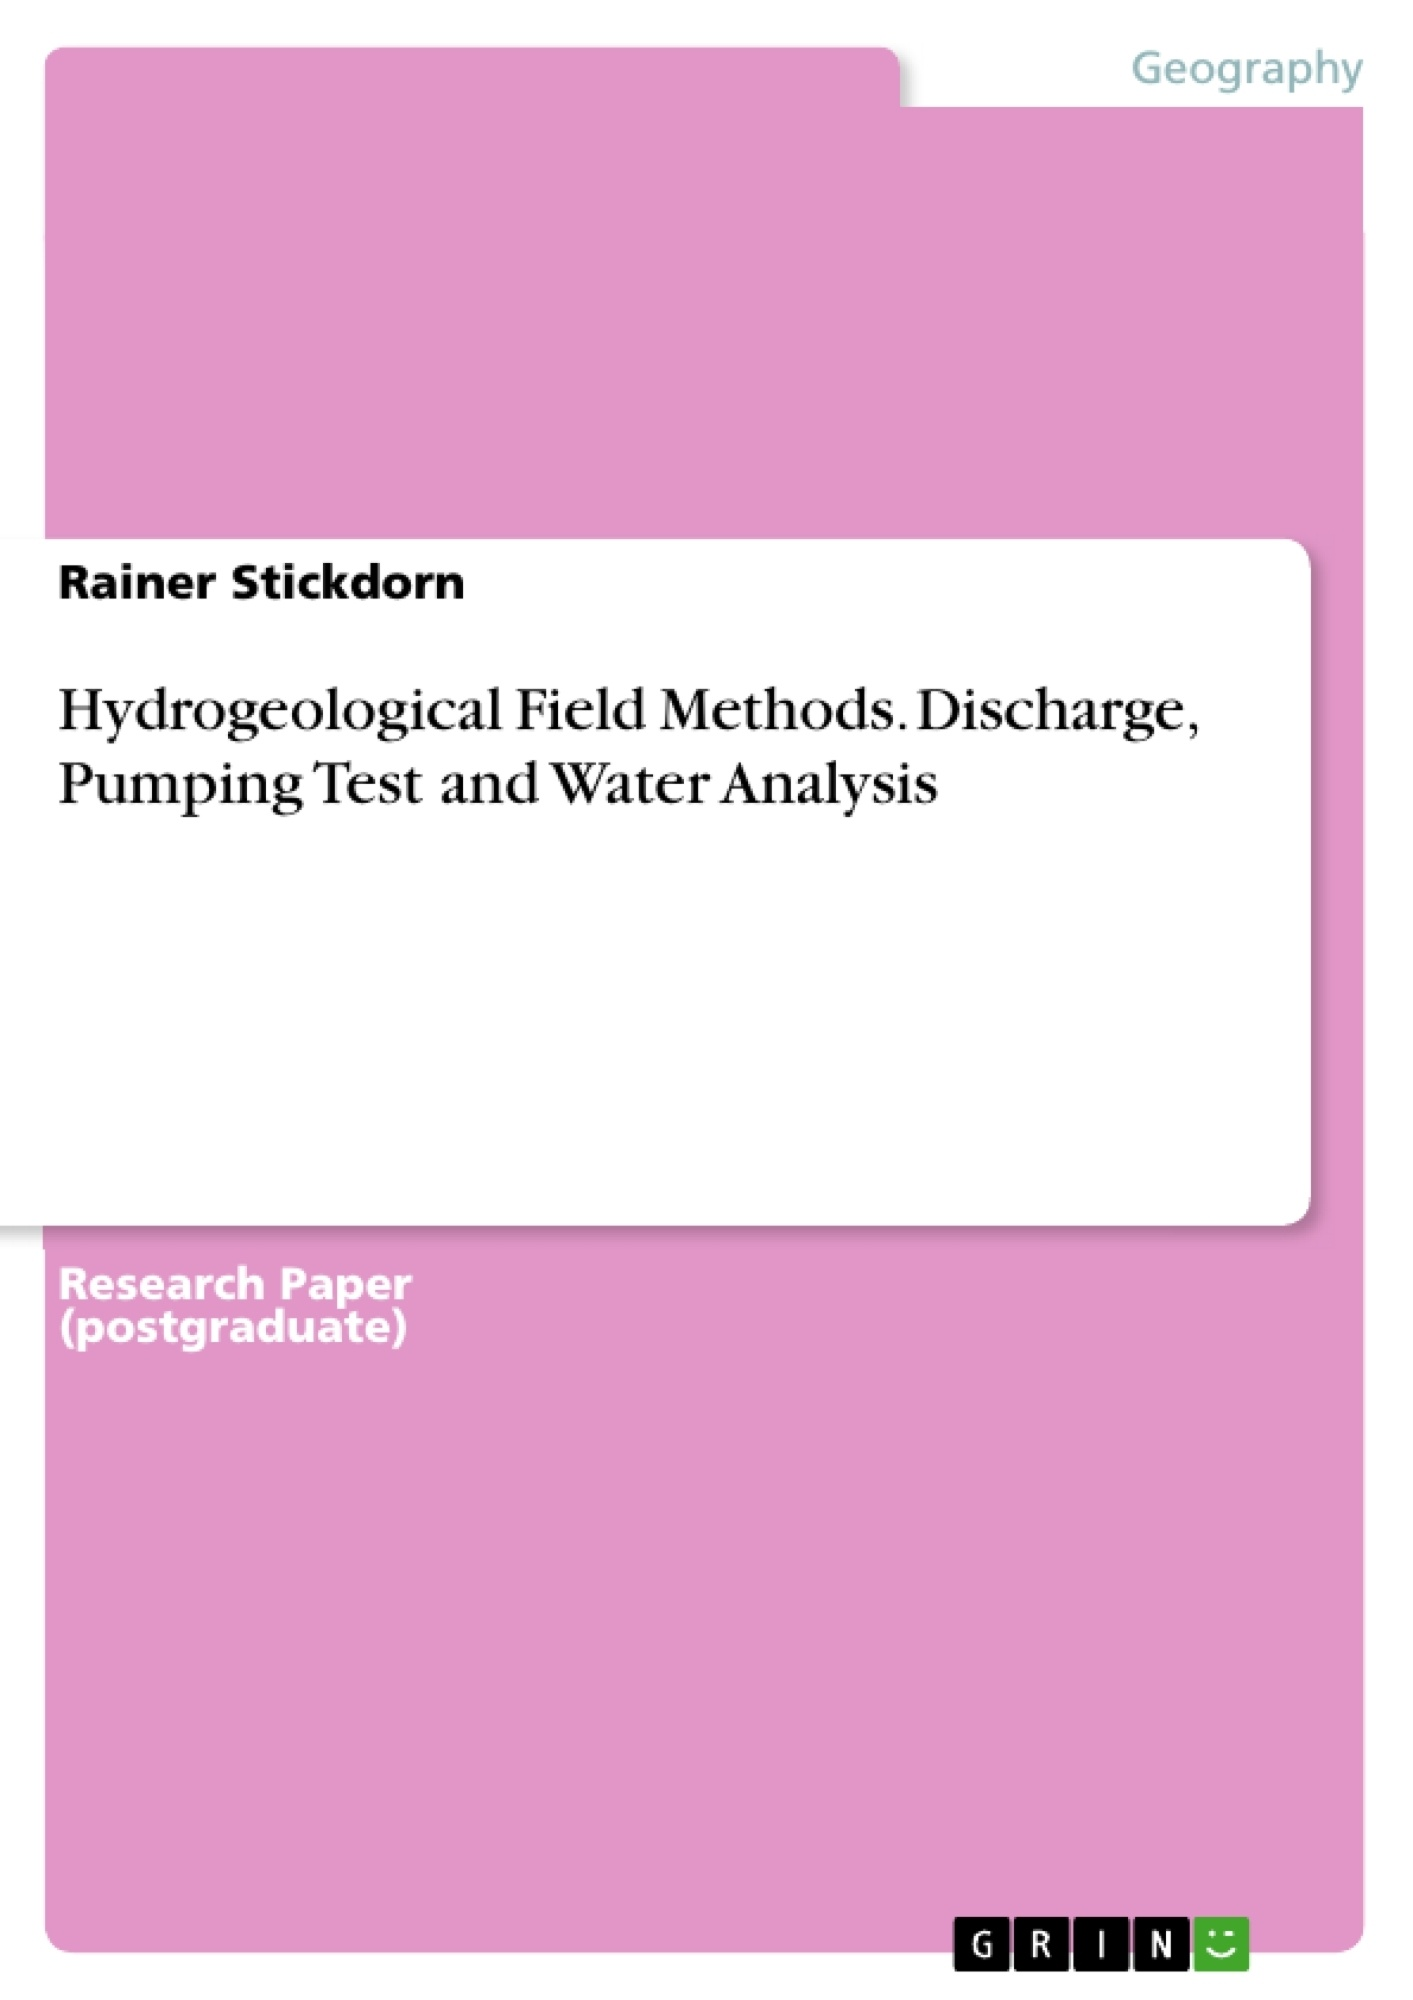 Title: Hydrogeological Field Methods. Discharge, Pumping Test and Water Analysis